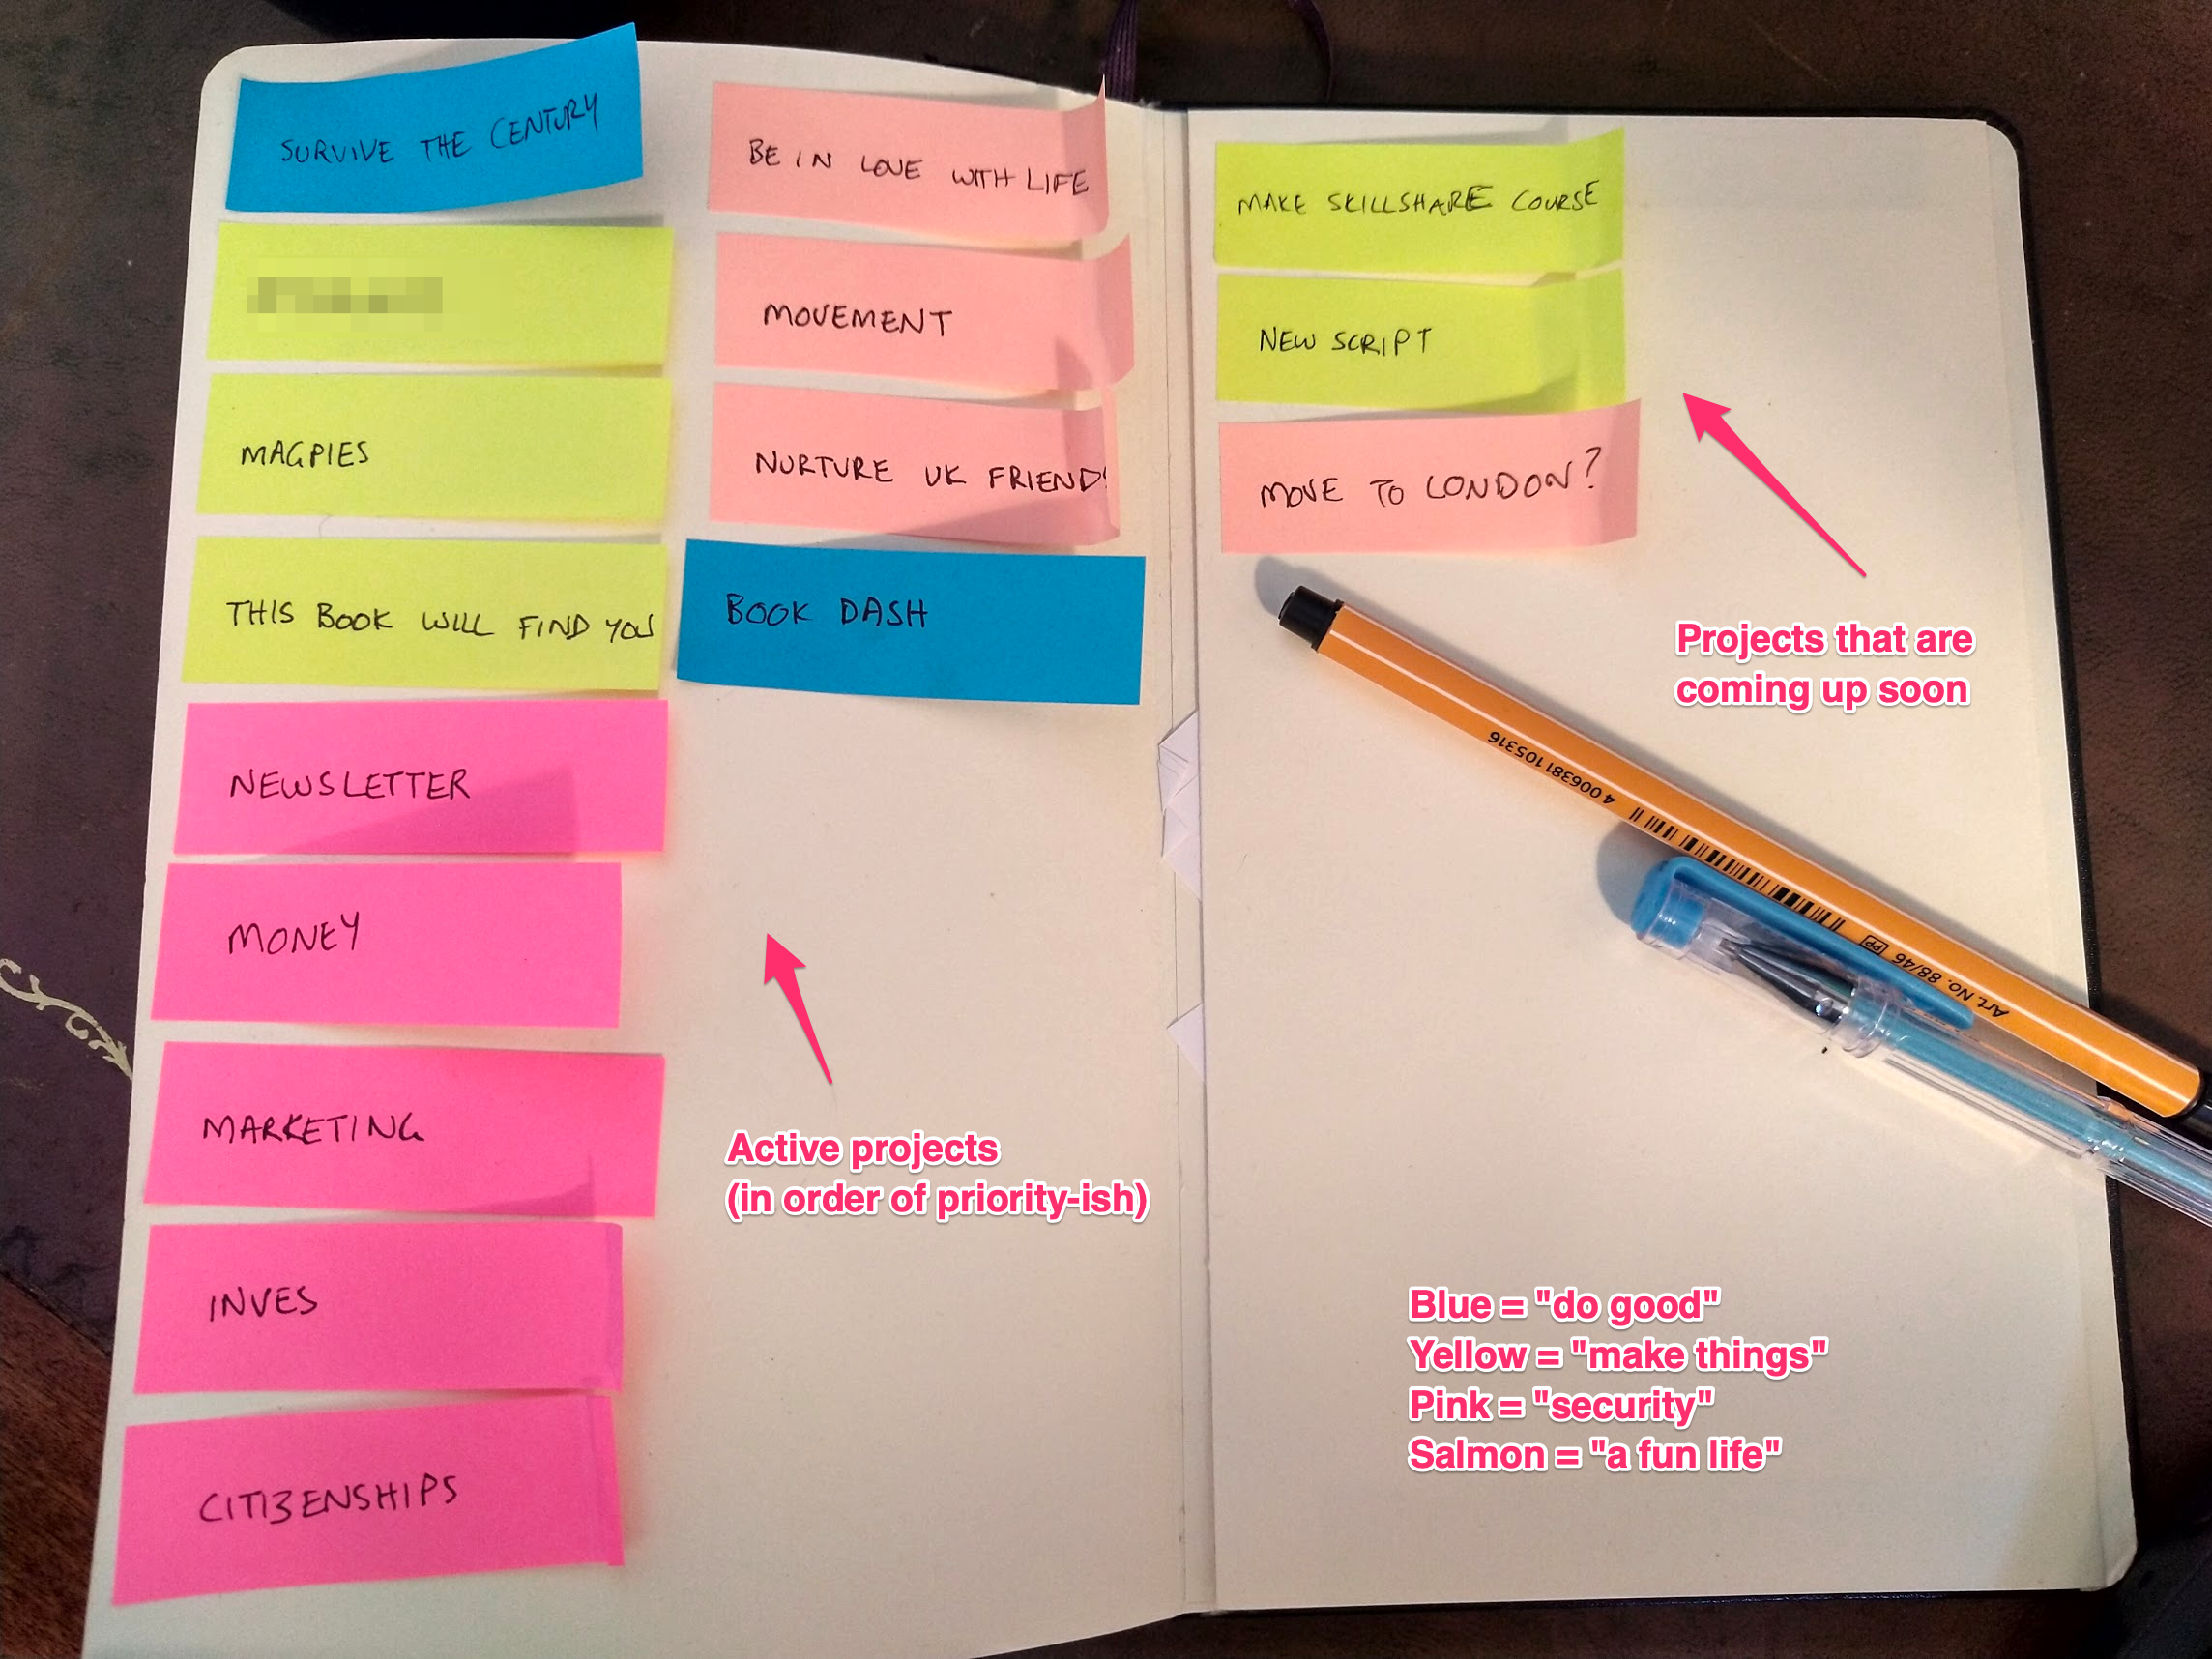 A list of projects. Each one is written on a sticky note, and there are about 13 in total.